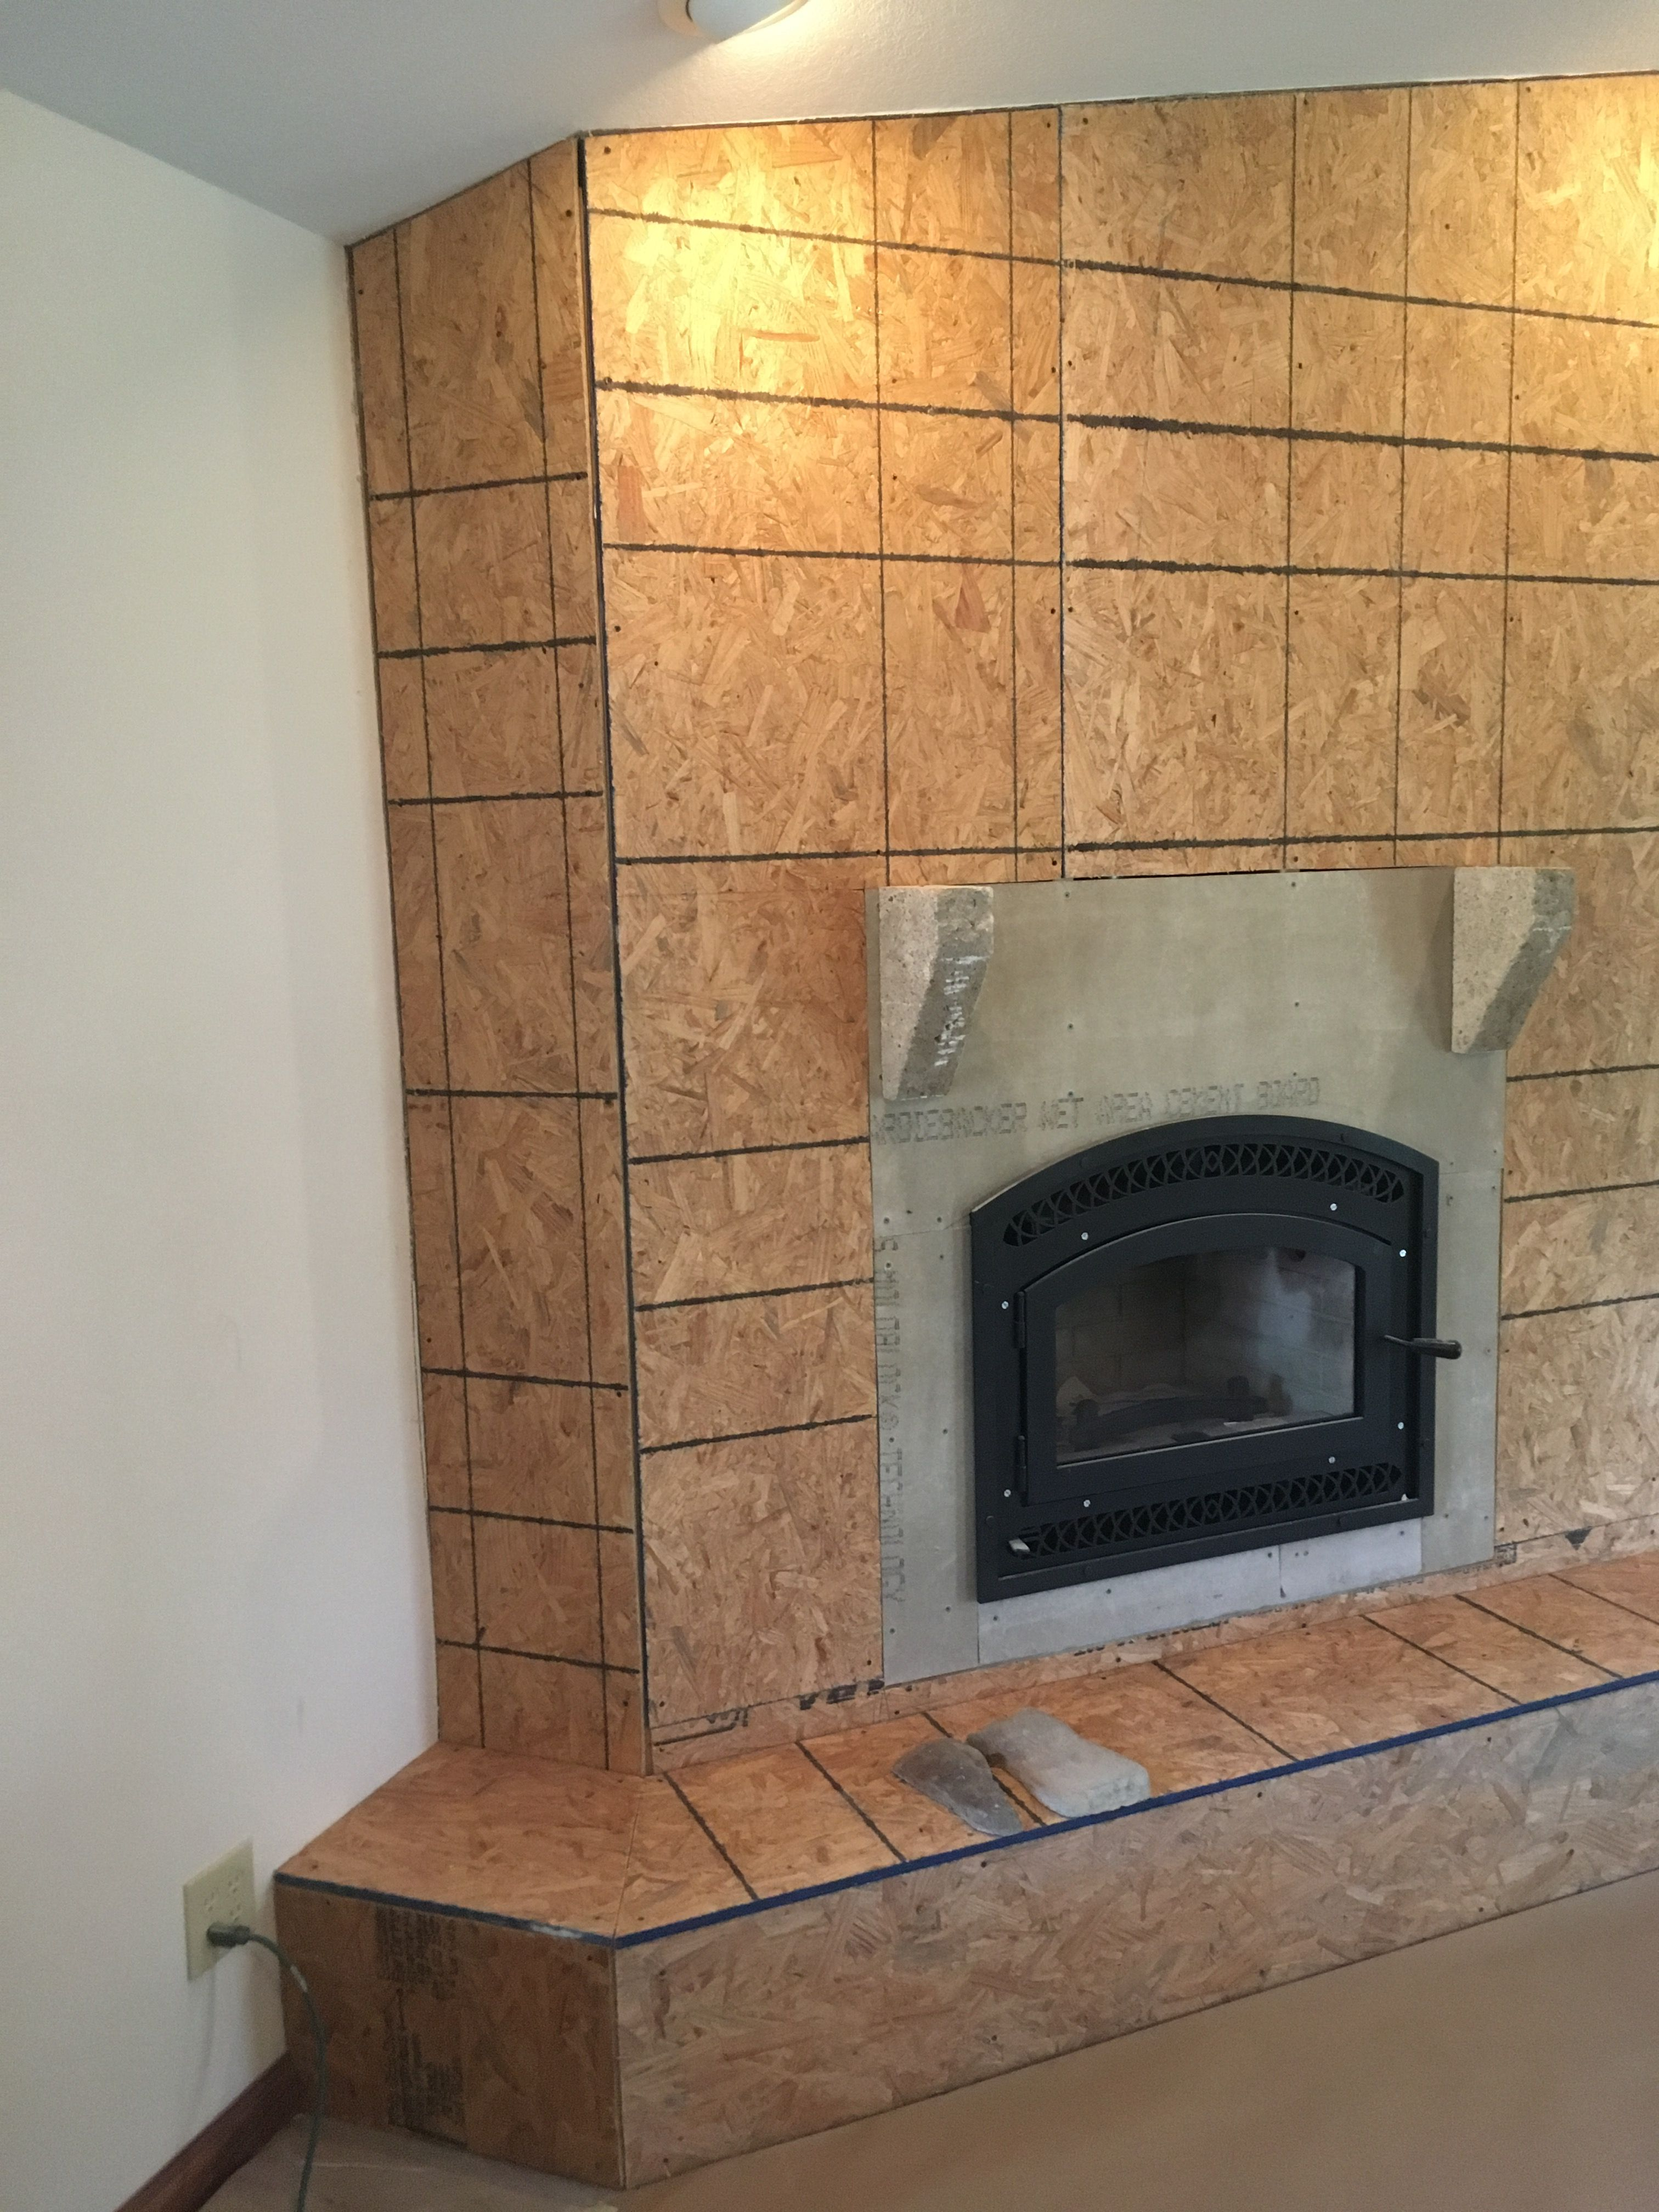 New Fireplace Insert Framed In And Ready To Have Faux Stone Lied